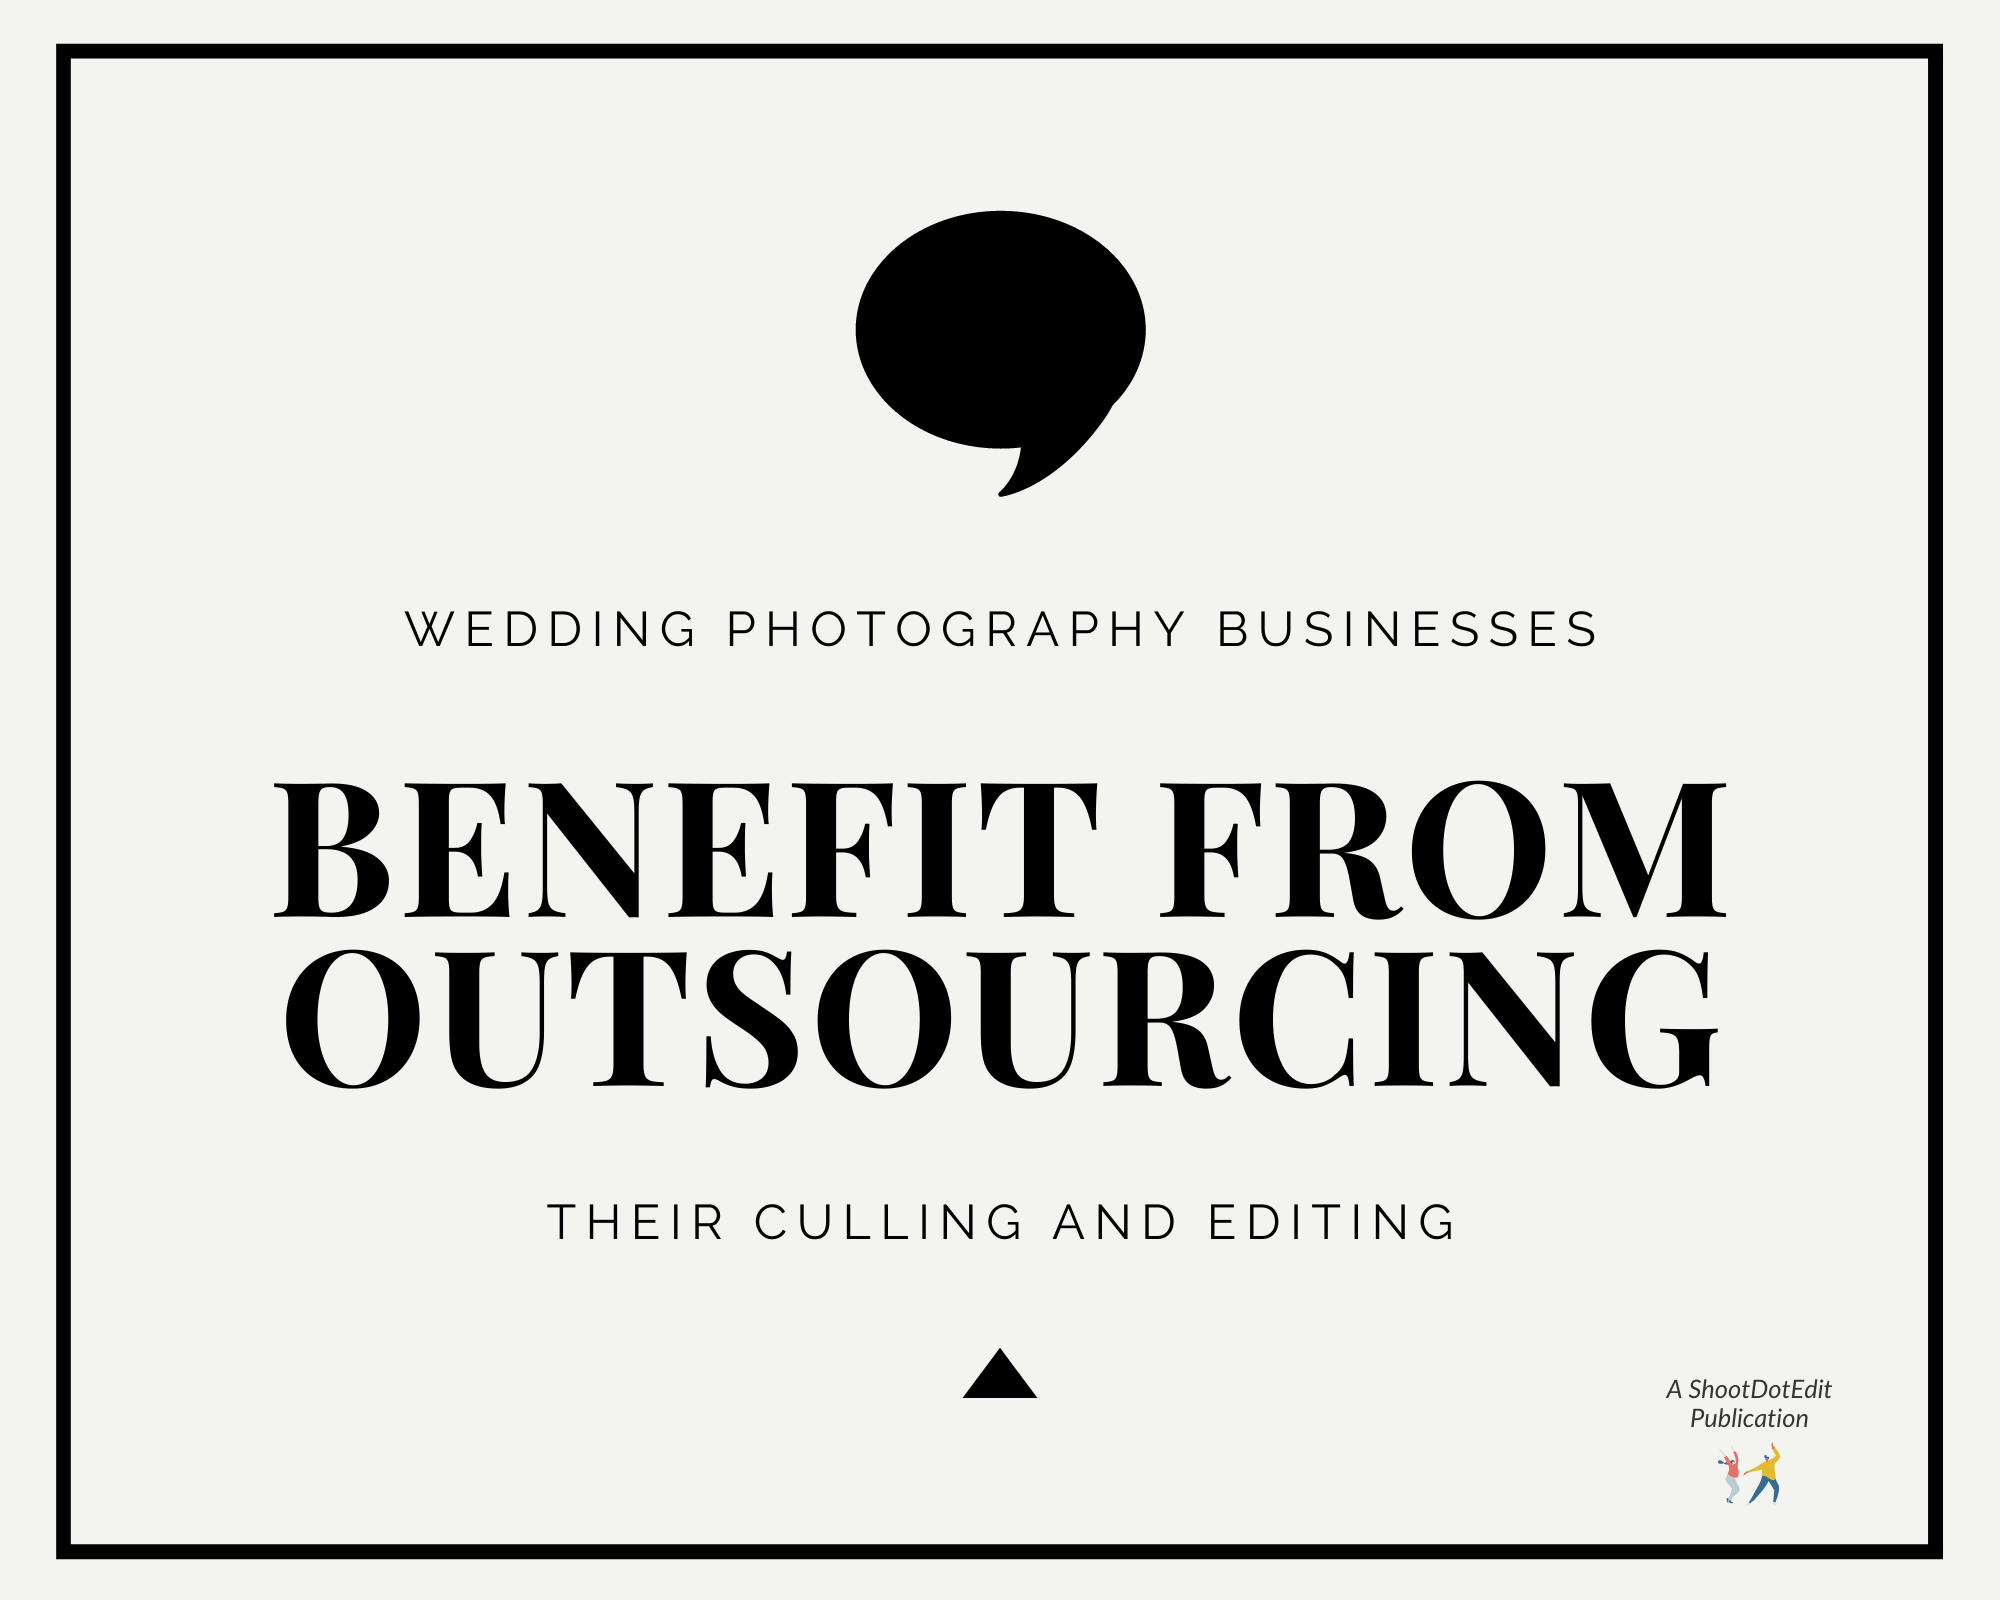 Infographic stating wedding photography businesses benefit from outsourcing their culling and editing